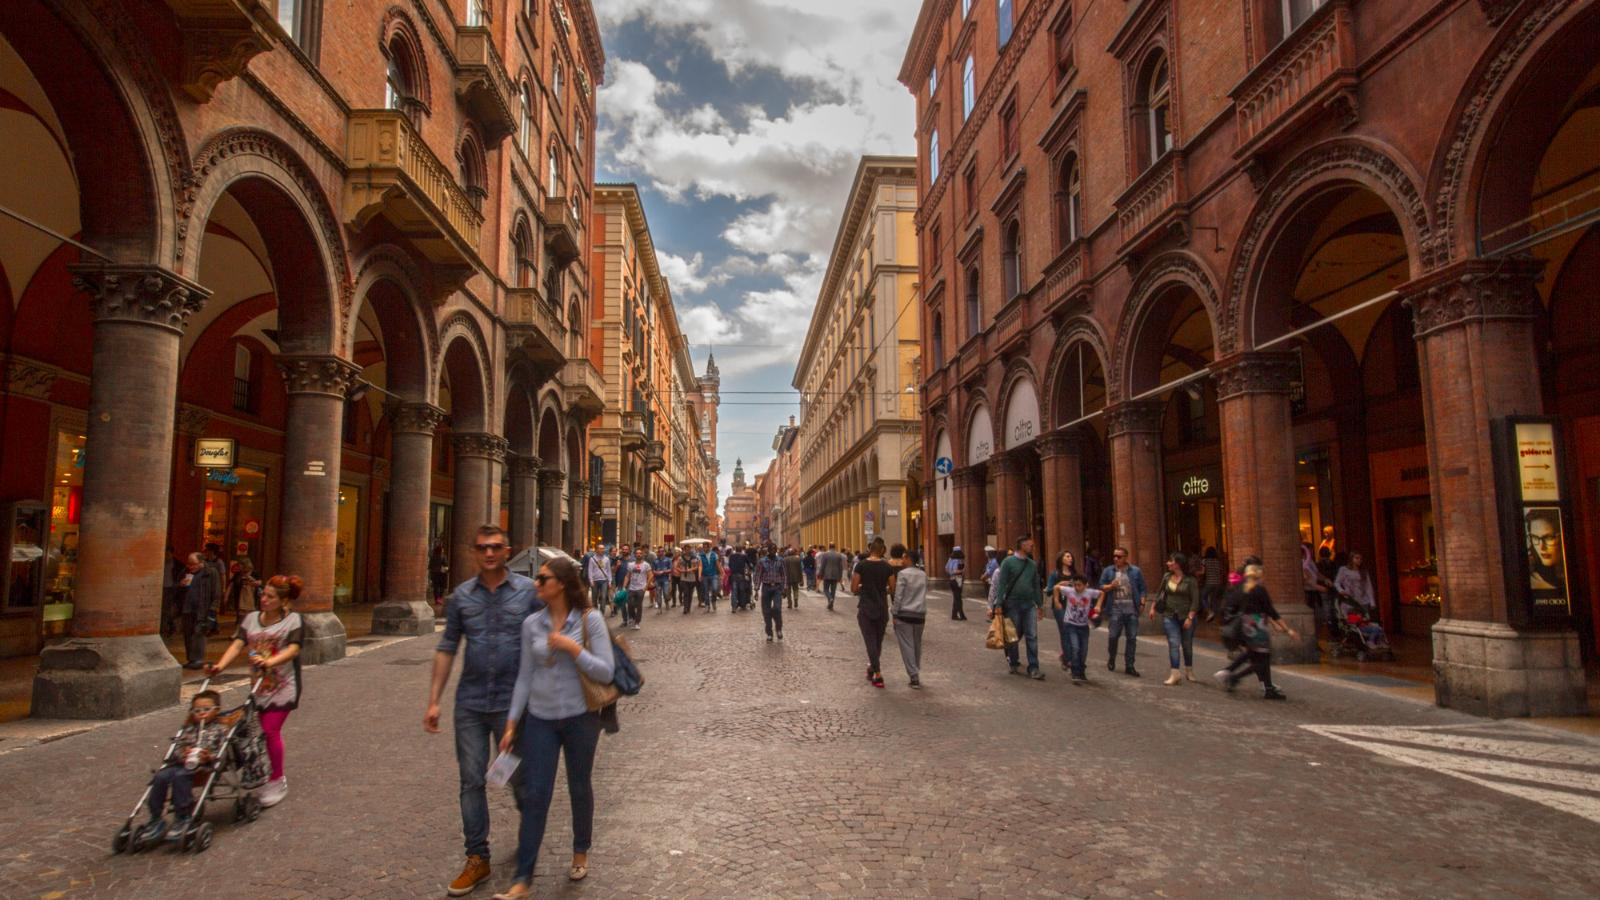 Bologna Welcome CC BY 4.0